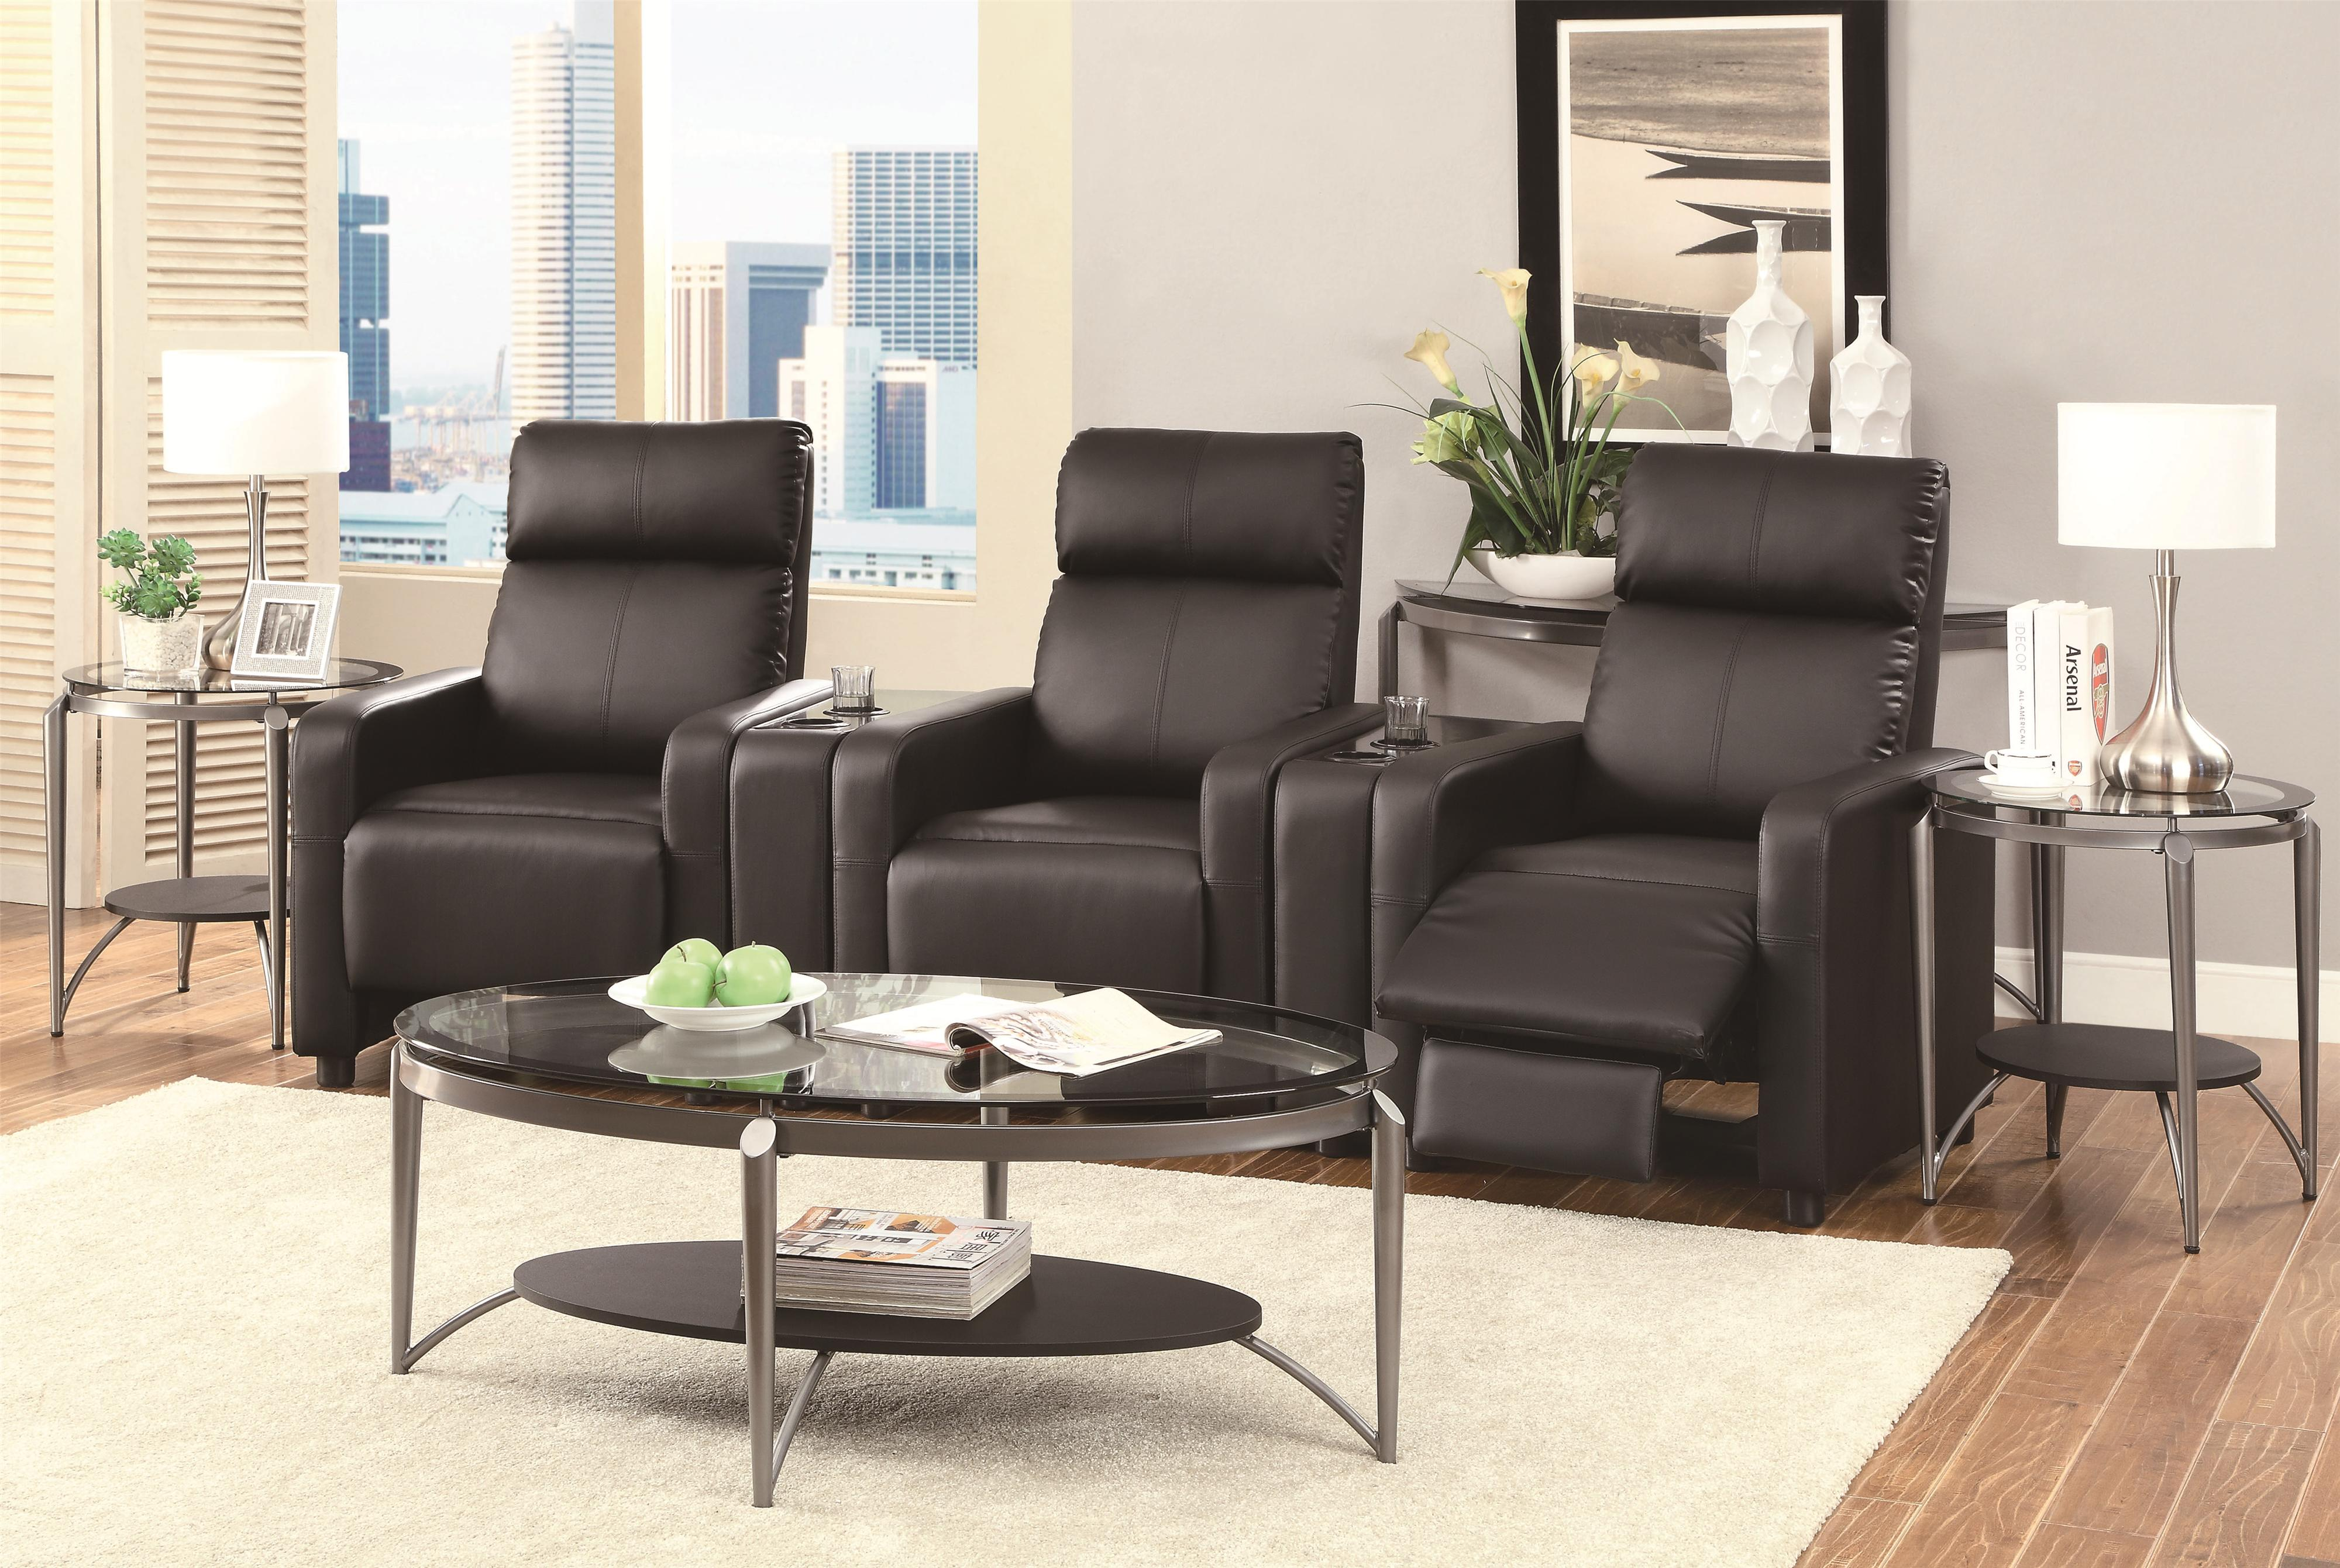 Coaster Toohey Contemporary Five Piece Reclining Home Theater Seating With  Console Tables Coaster Fine FurnitureCoaster Toohey